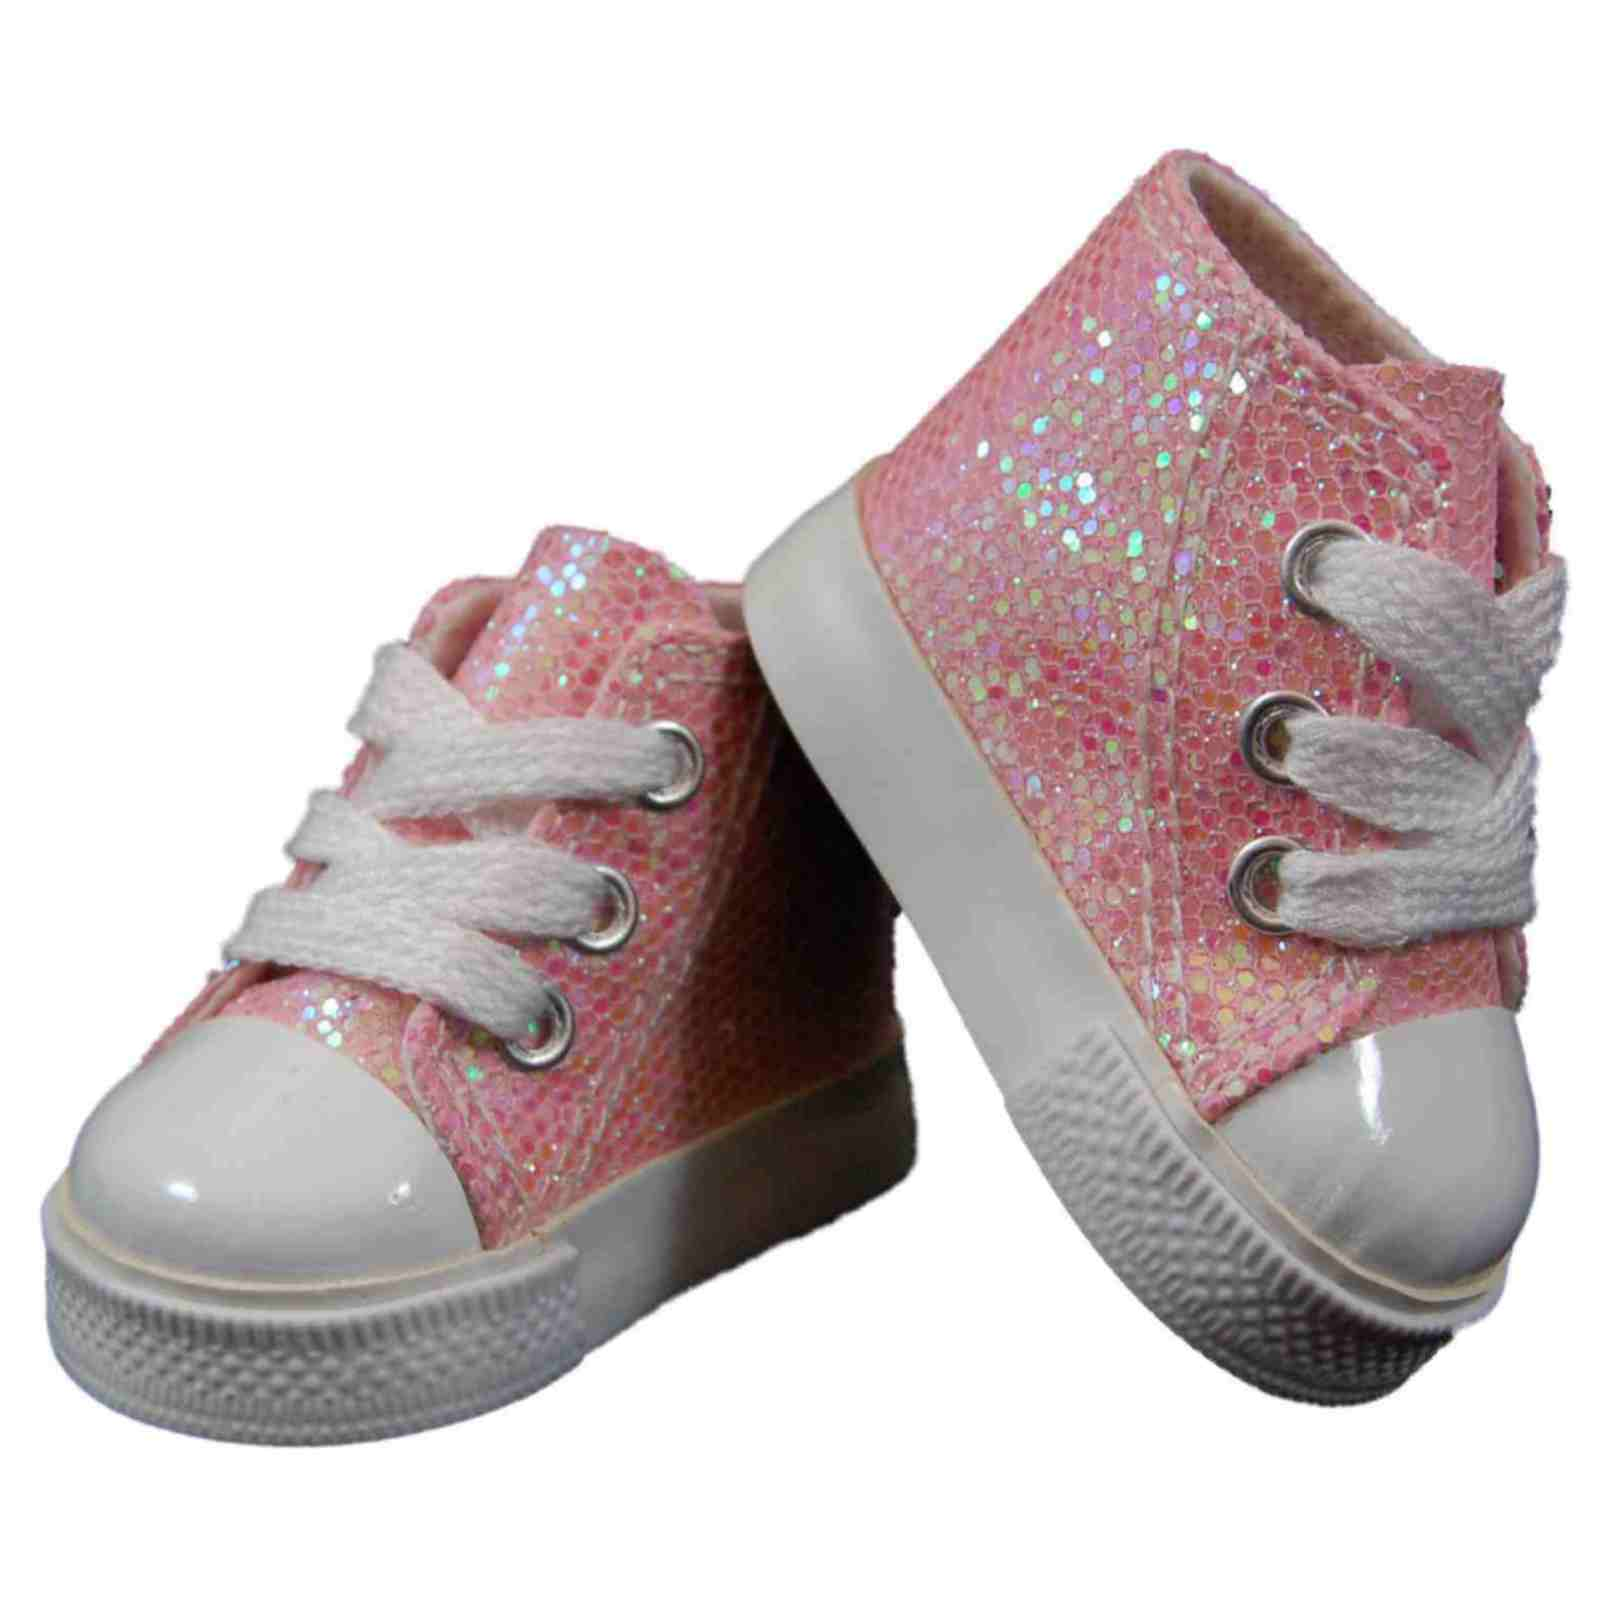 Купить The Queen's Treasures - 18 Doll Shoes Pink High Top Sneakers +Box Fit American Girl Clothes Accessories